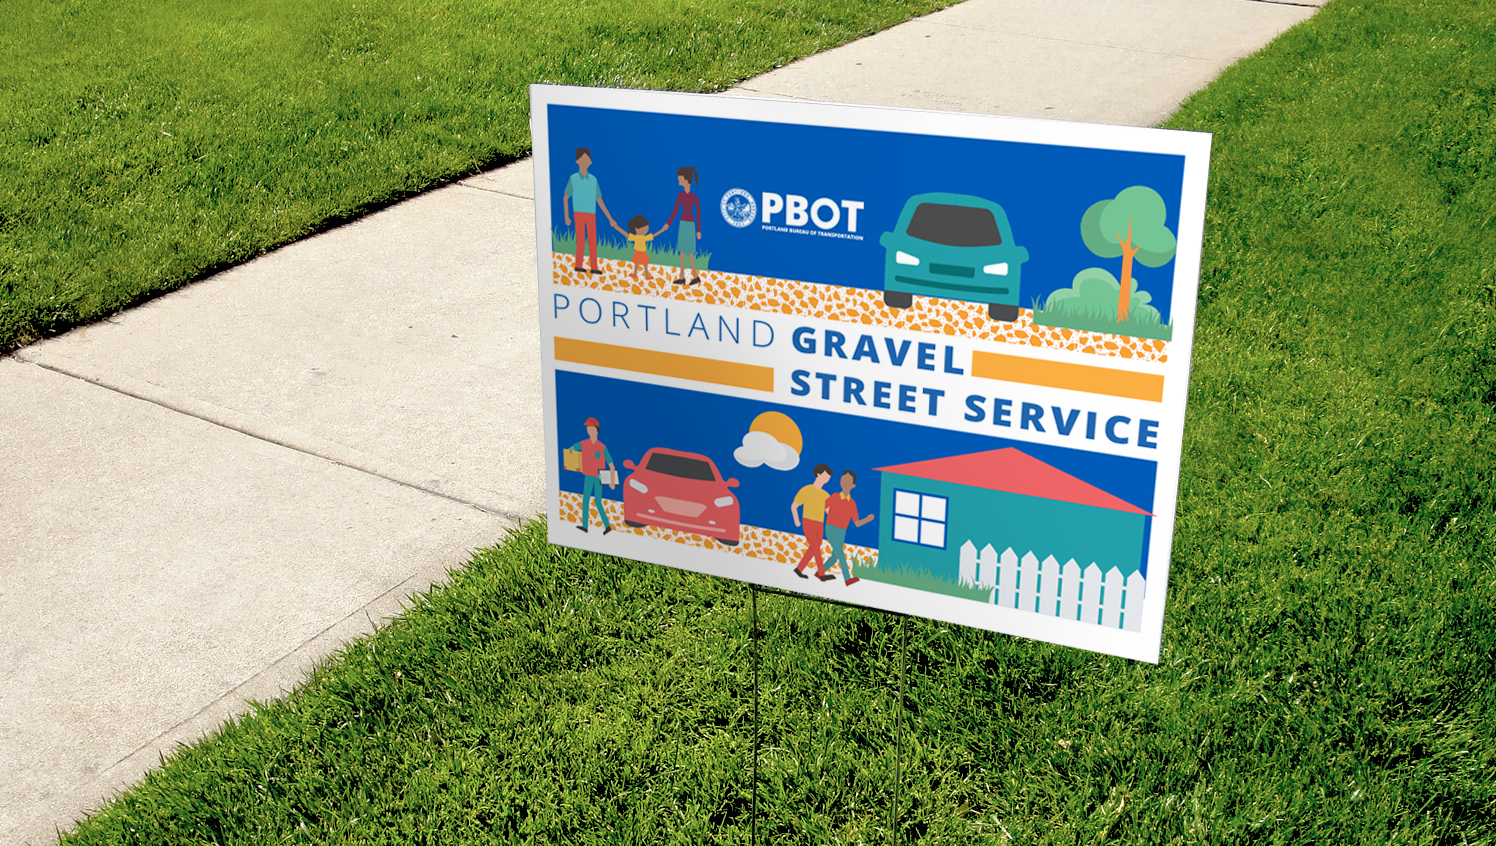 PBOT_Gravel_Streets_yard_sign2.png